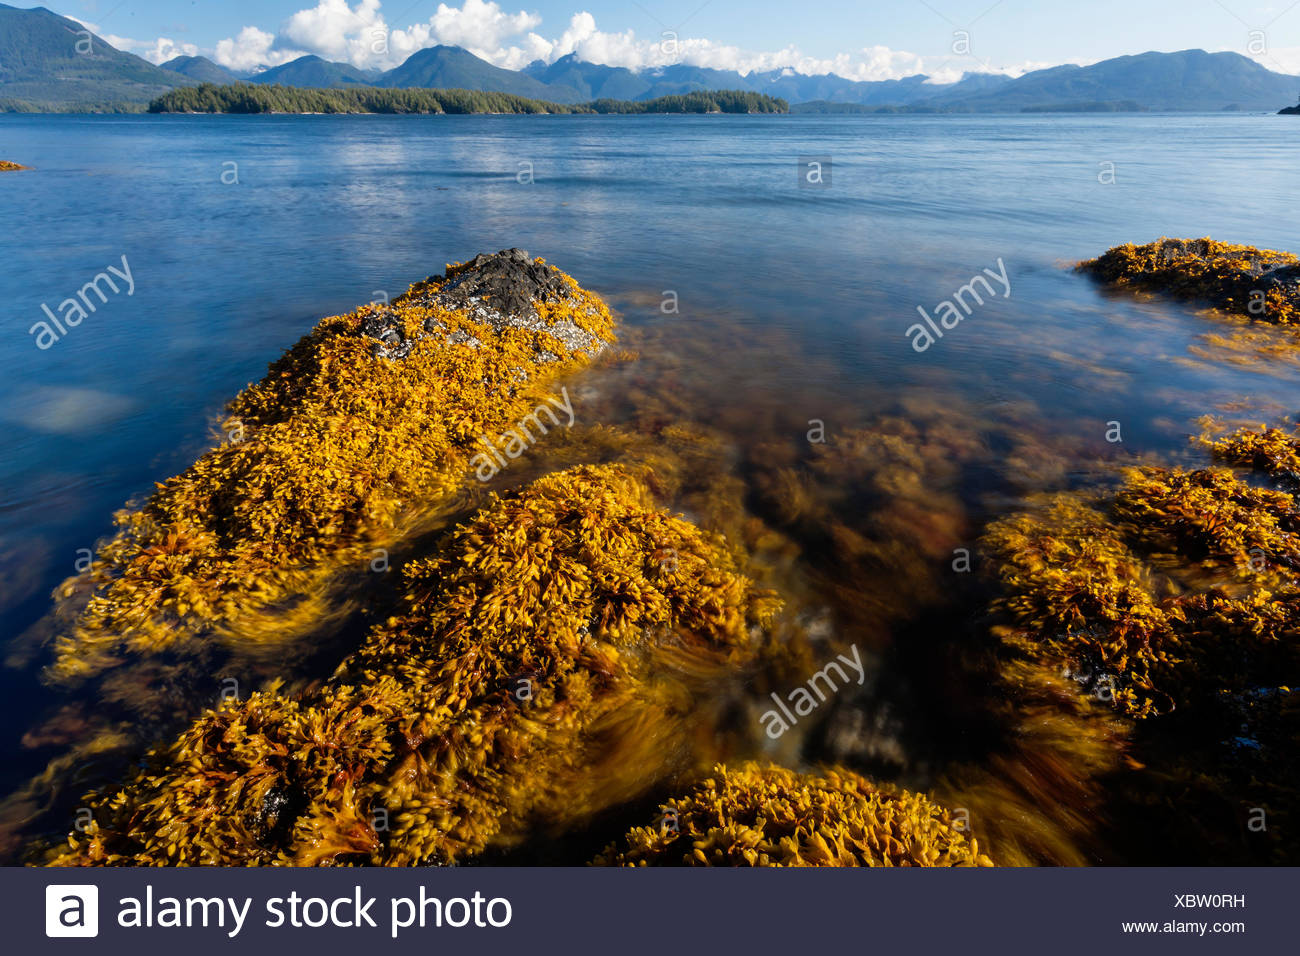 Kelp sways in the tidal current around Dodd Island in the Broken Island Group Barkley Sound Vancouver Island British Columbia - Stock Image